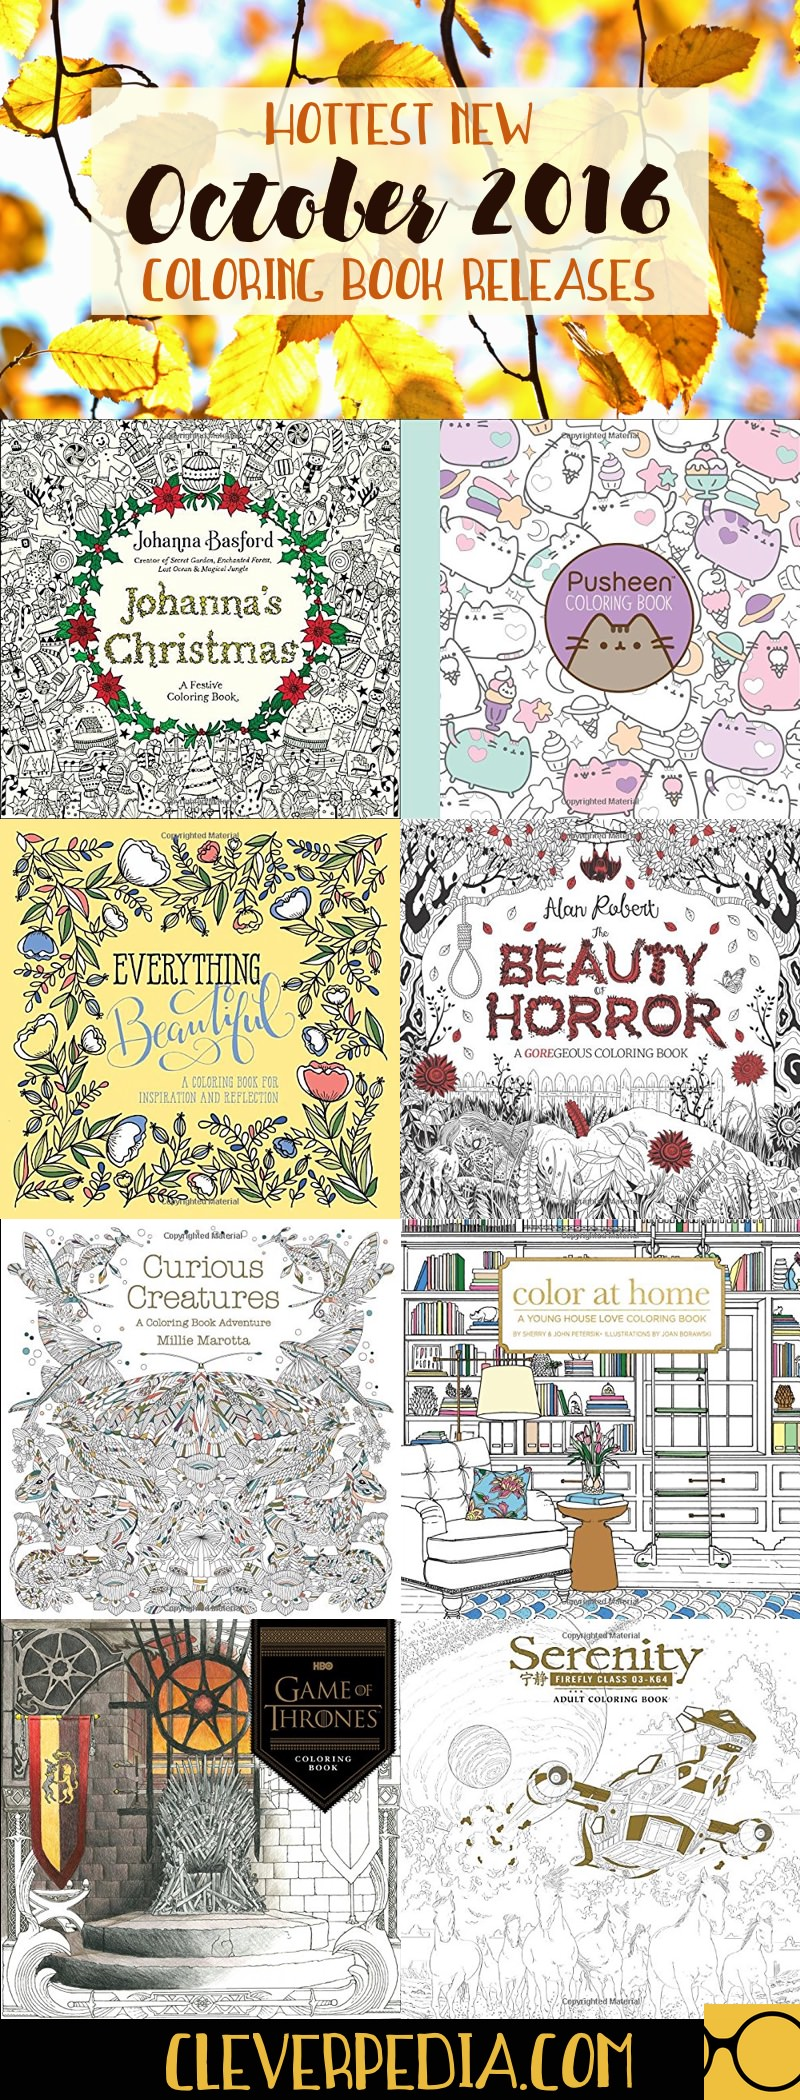 10 Hot New Coloring Book Releases For October 2016